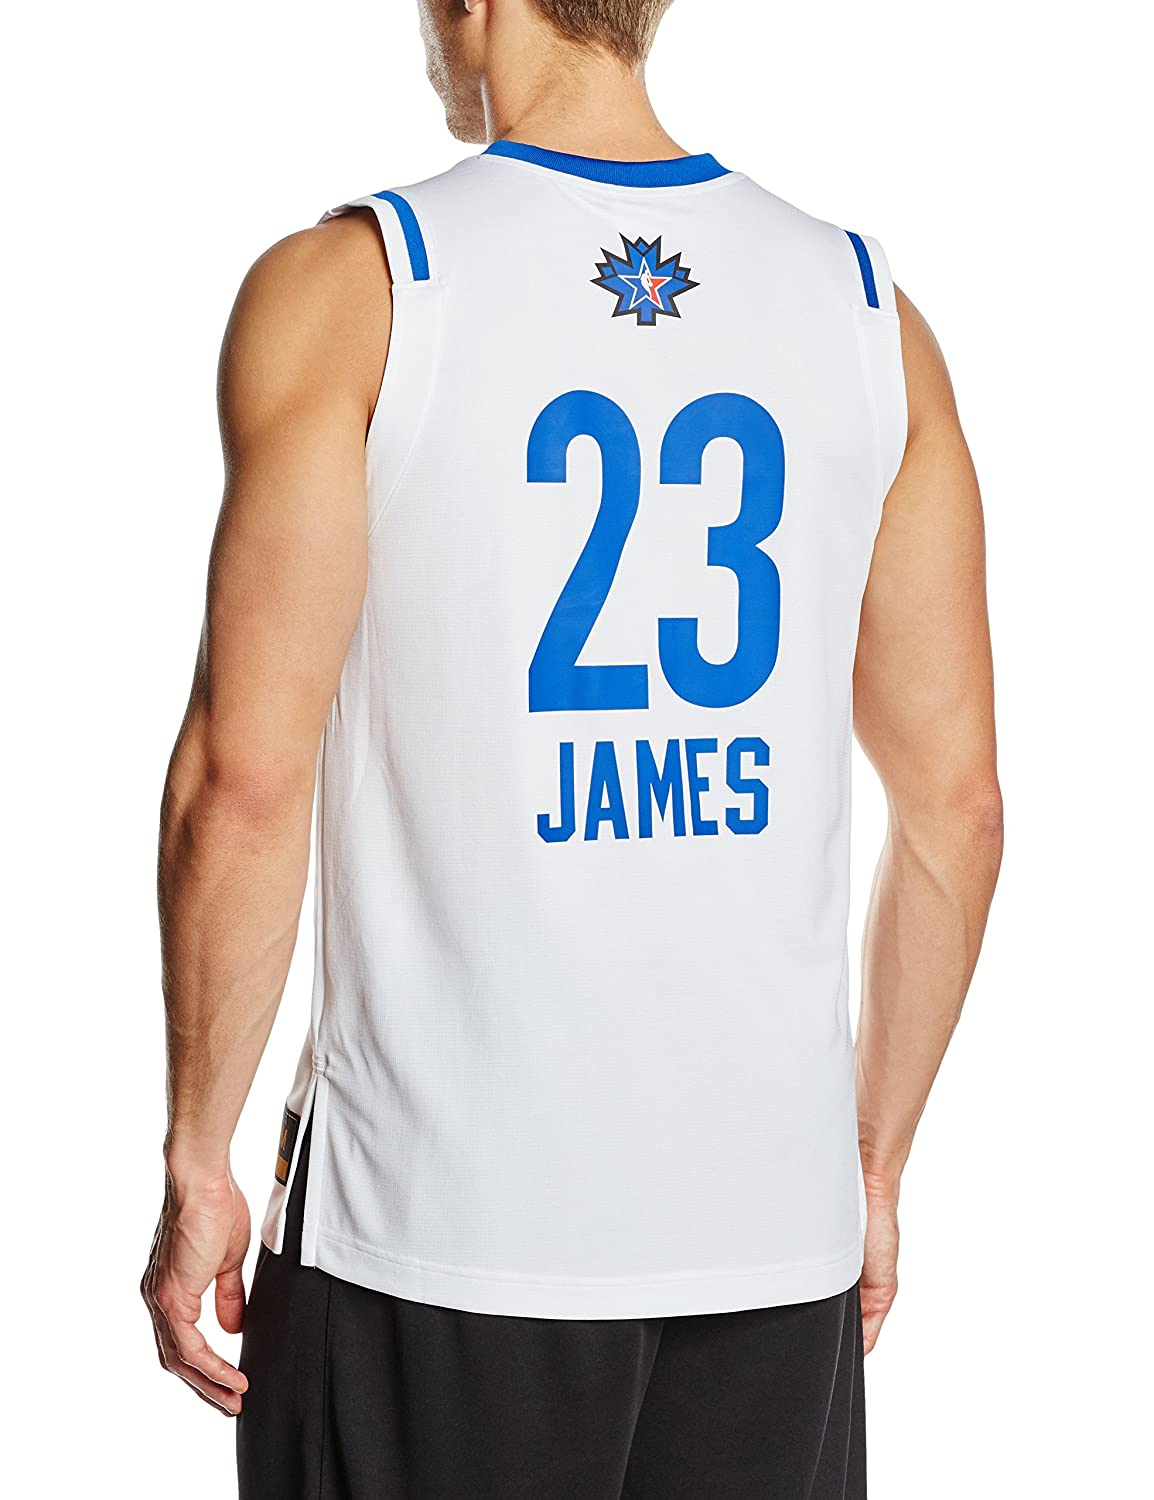 Adidas - Camiseta de Baloncesto para Hombre, diseño NBA All Star Game East Swingman, réplica de la Camiseta n.º 23 de Lebron James, Hombre, Color Blanco, ...